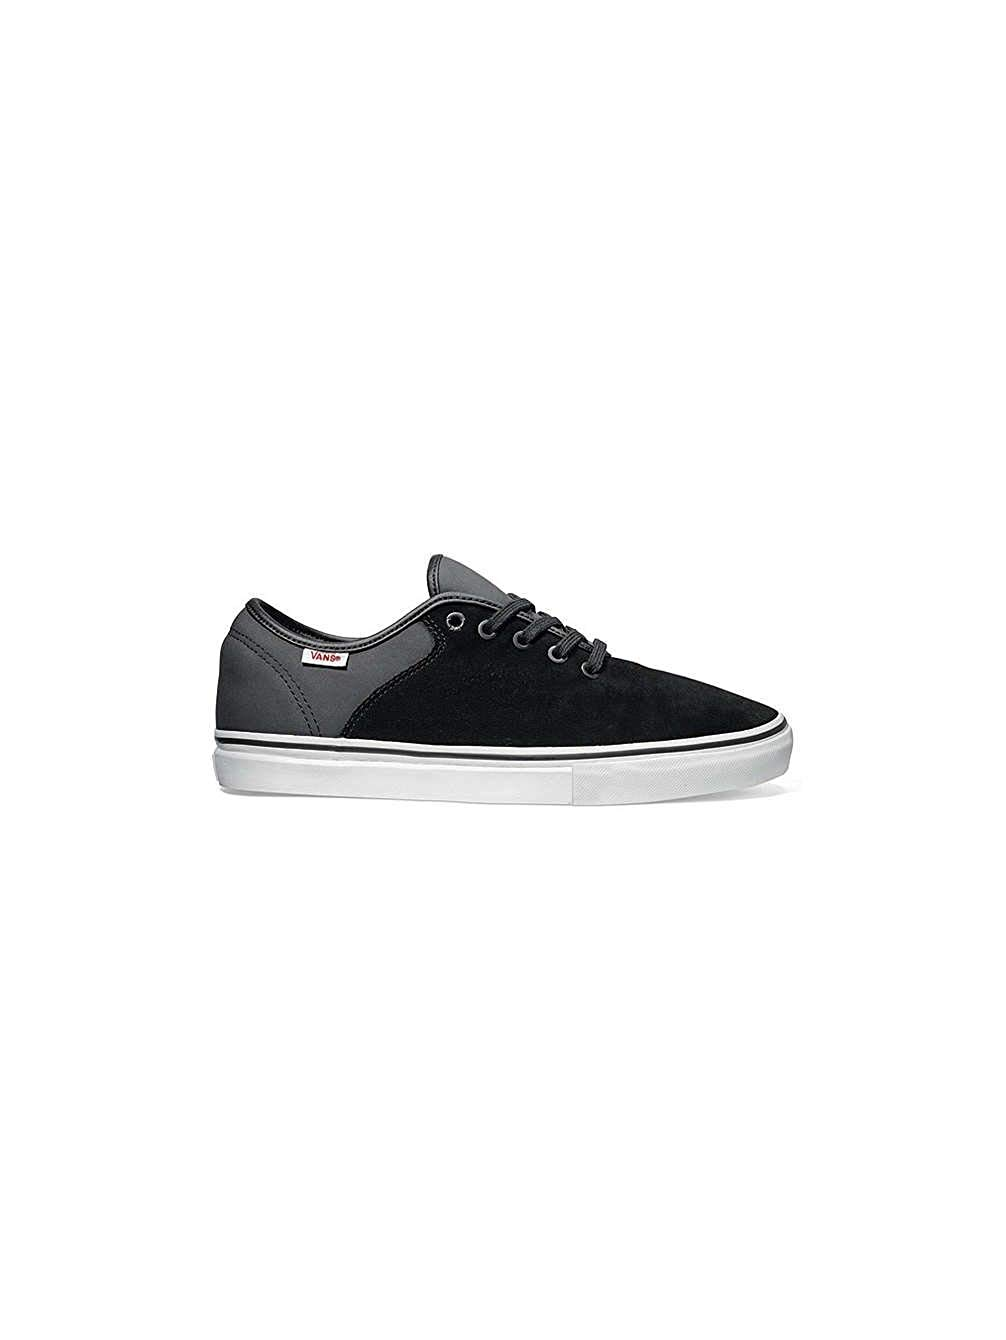 6f671e9671 Get Quotations · Vans OTW Stage 4 Low (Chris Pfanner) Black Red  Skateboarding Shoes 6.5 D